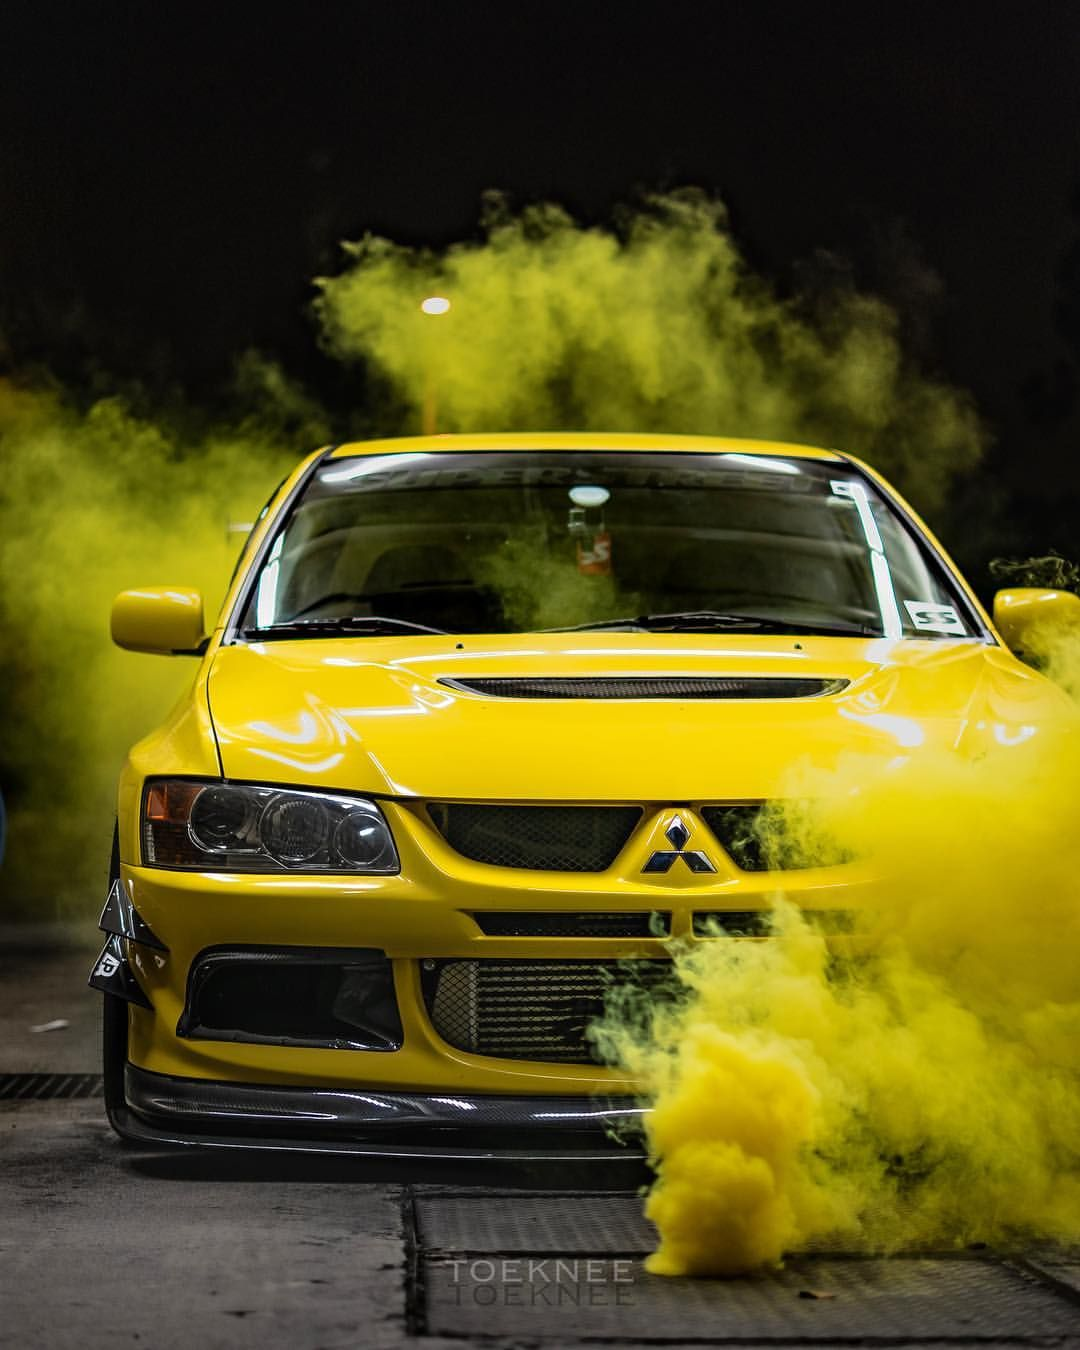 Mitsubishi Car Wallpaper: These Smoke Shots Are Very Interesting To Play Around With